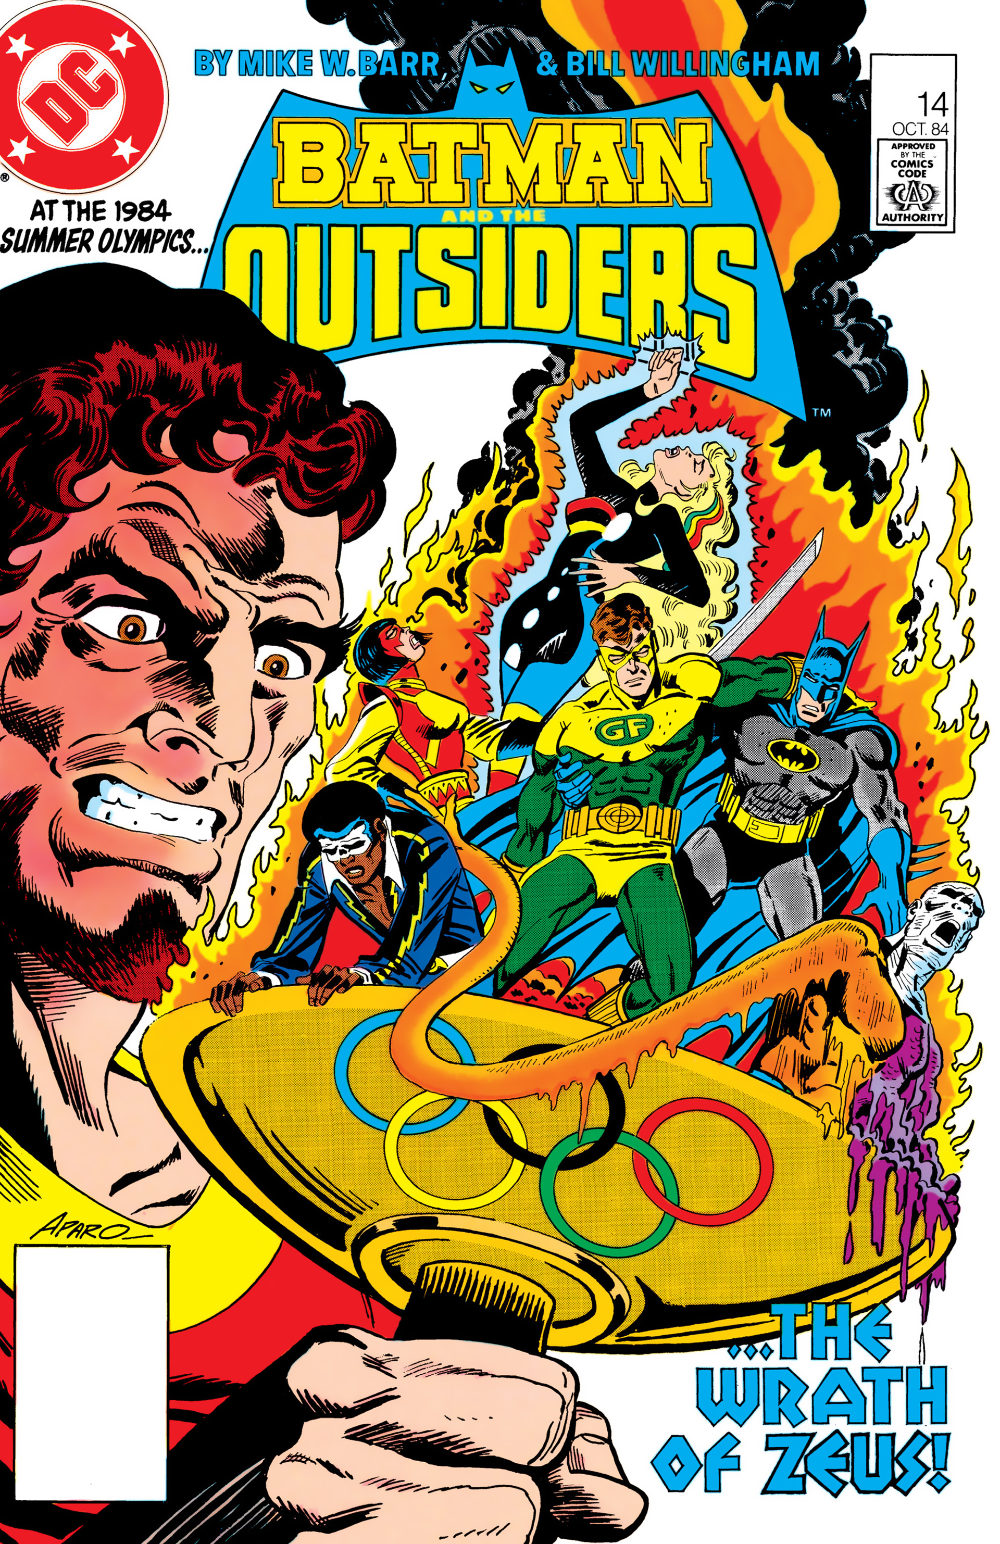 Batman And The Outsiders 1983 Issue 14 Read Batman And The Outsiders 1983 Issue 14 Comic Online In High Quality In 2020 Comics Batman The Outsiders